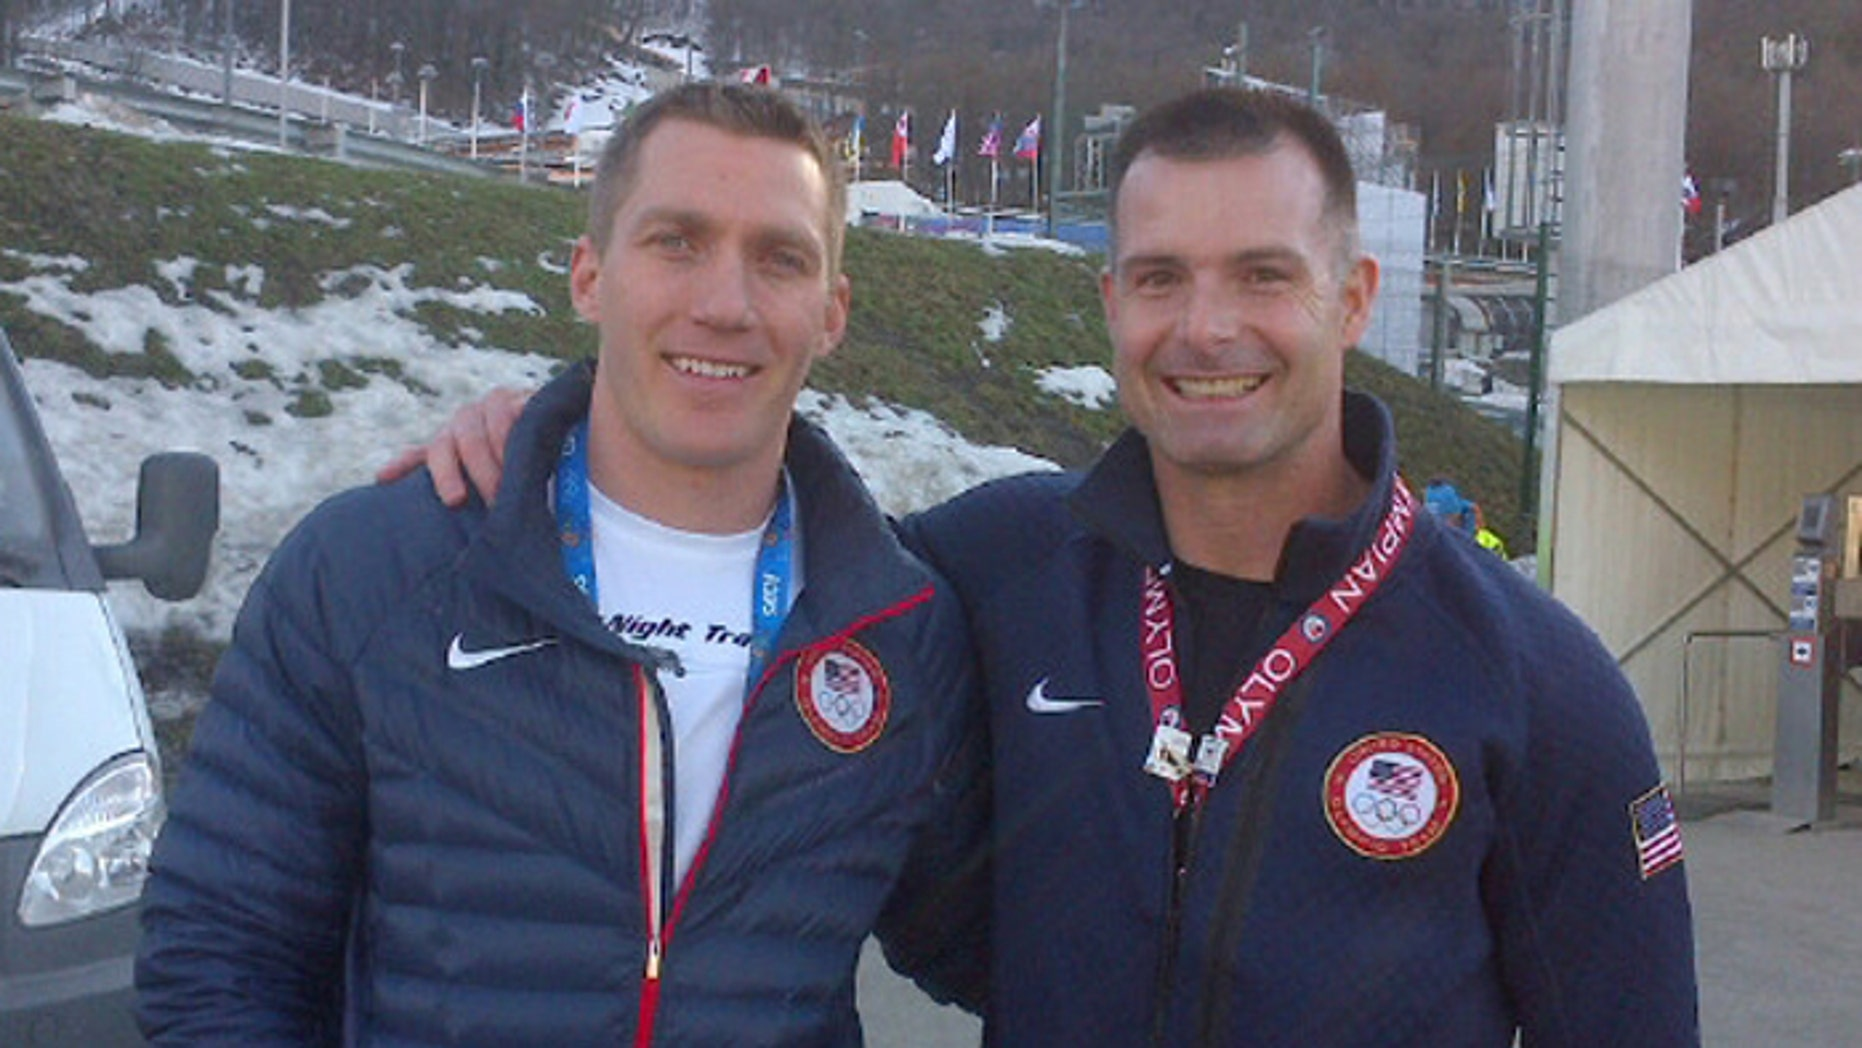 1st Lt. Mike Kohn, (r.), and Capt. Chris Fogt, (l.), are in Sochi to compete for Team USA in the bobsled event. (Fox News)